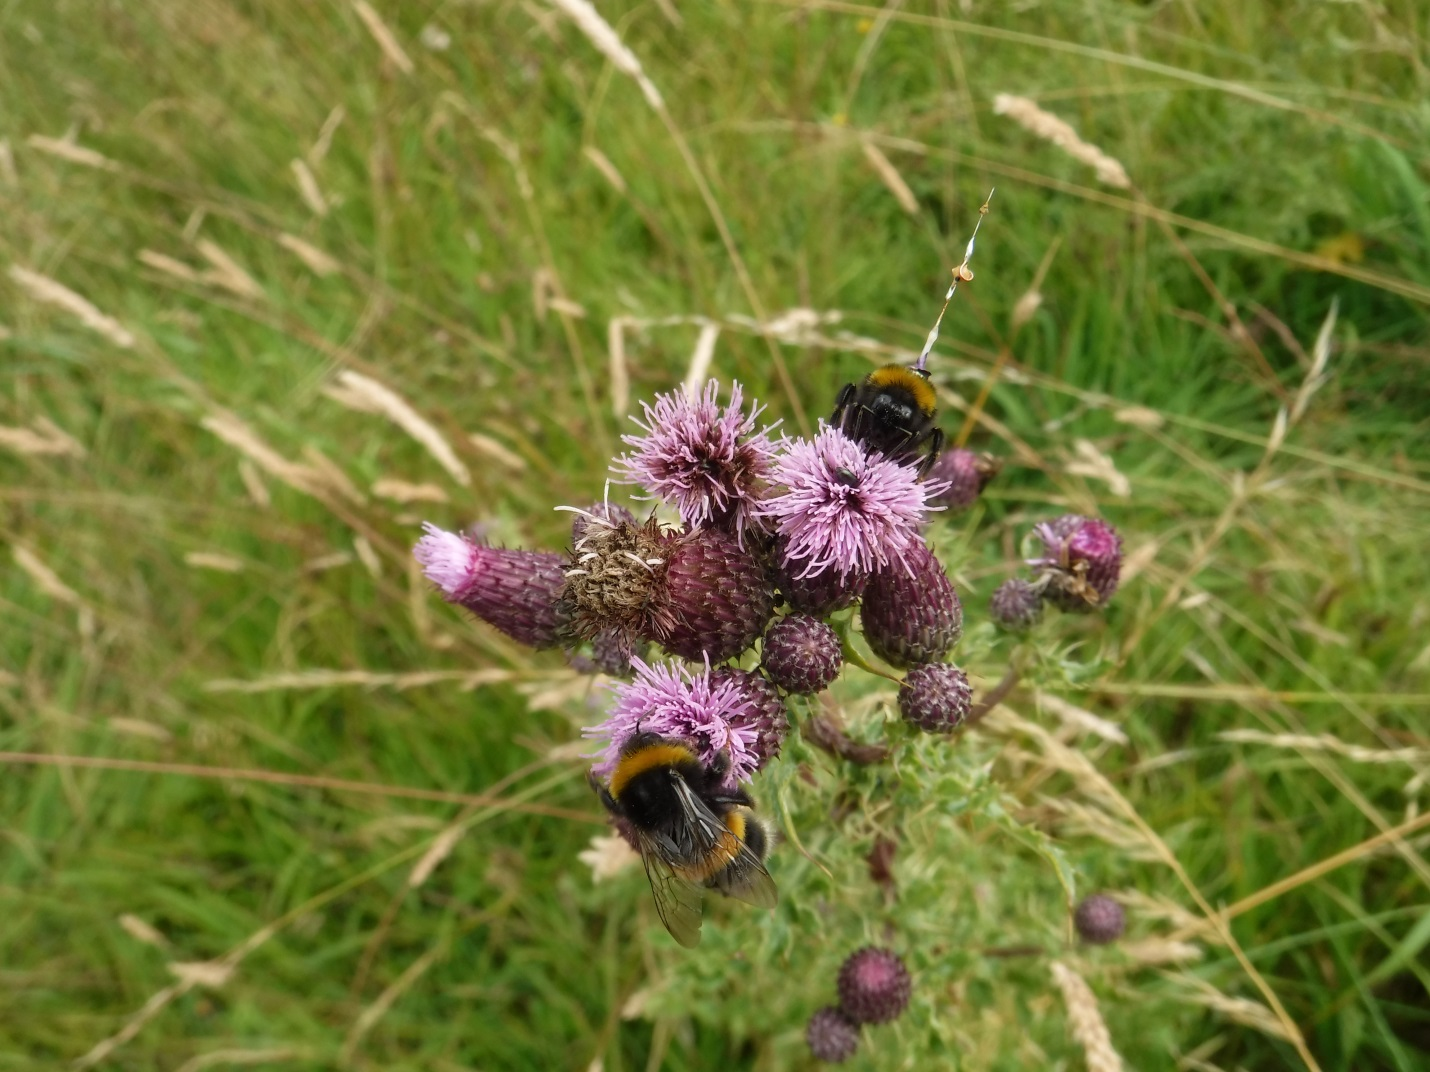 CATCH THE BUZZ – Selfish Bumblebees are Not Prepared to Share